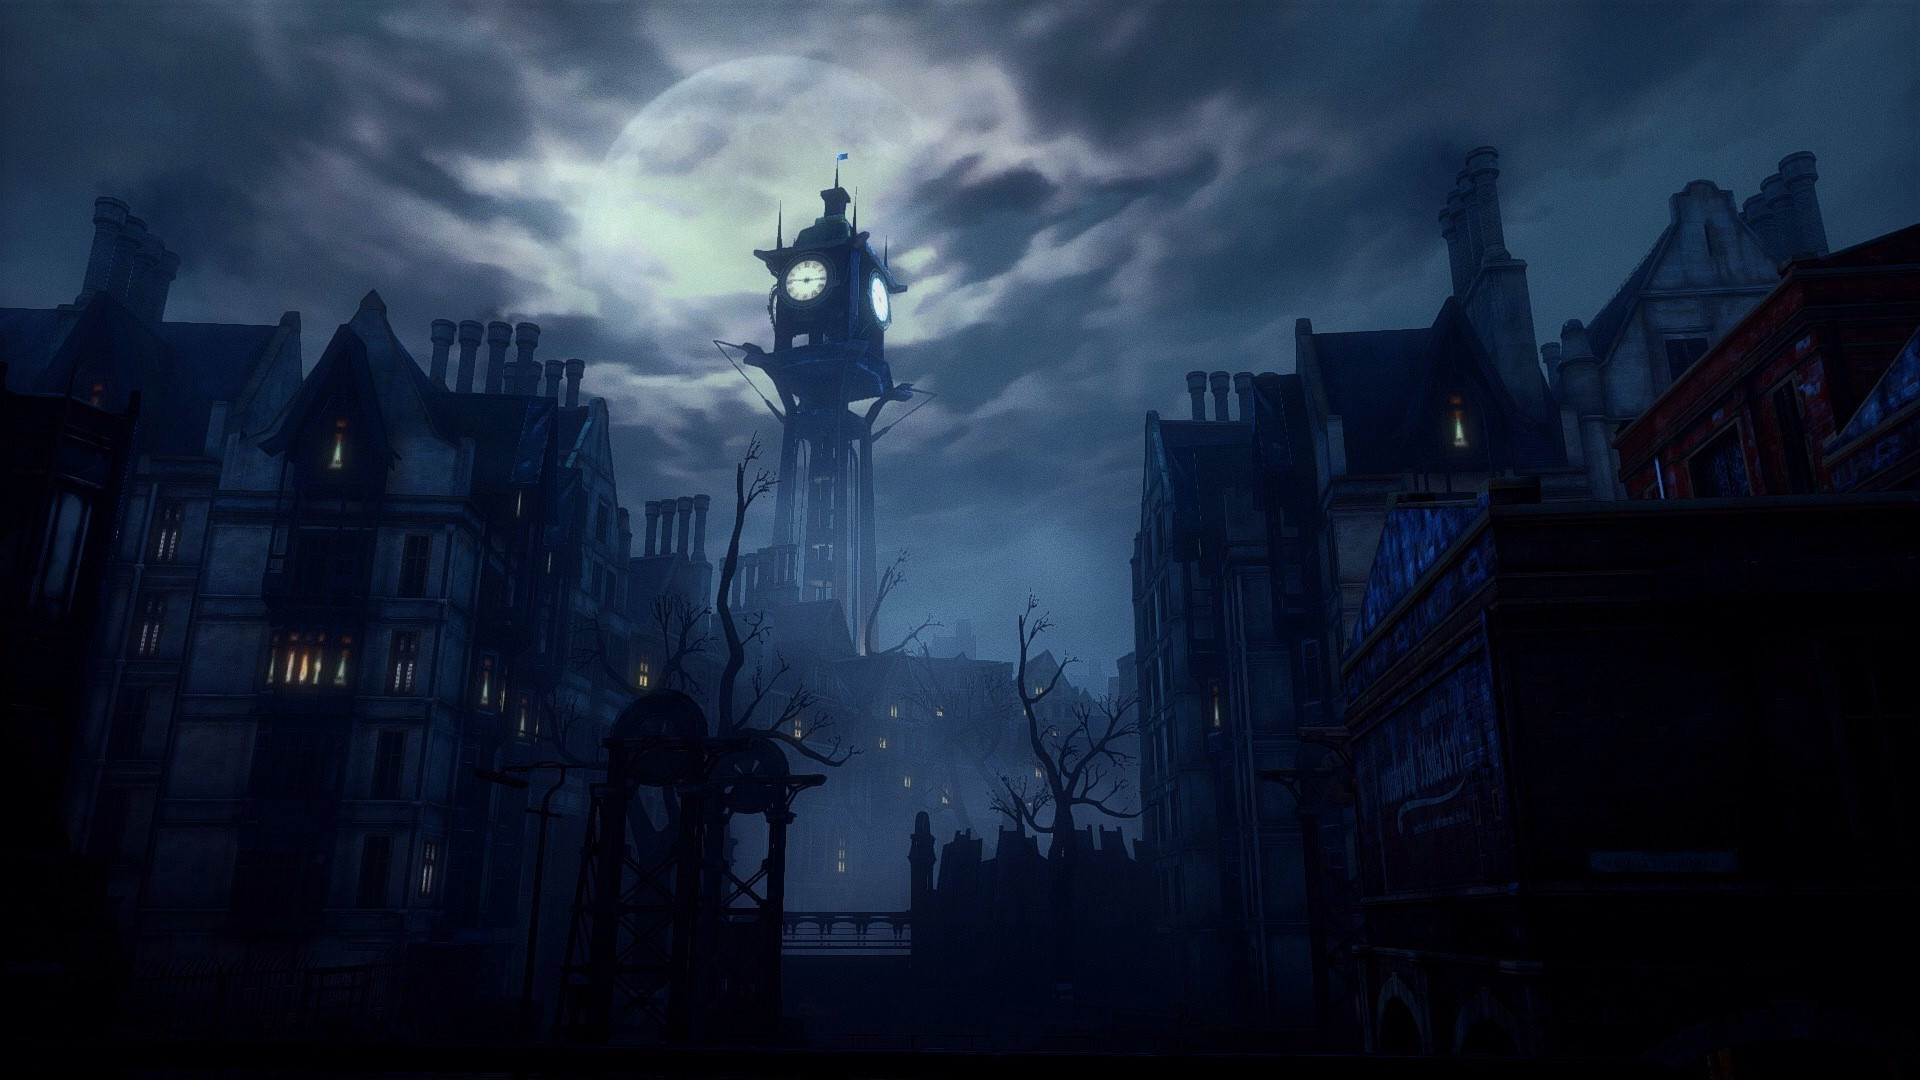 Gothic Girl Live Wallpaper Late Night At The Clock Tower 1920 215 1080 Wallpapers